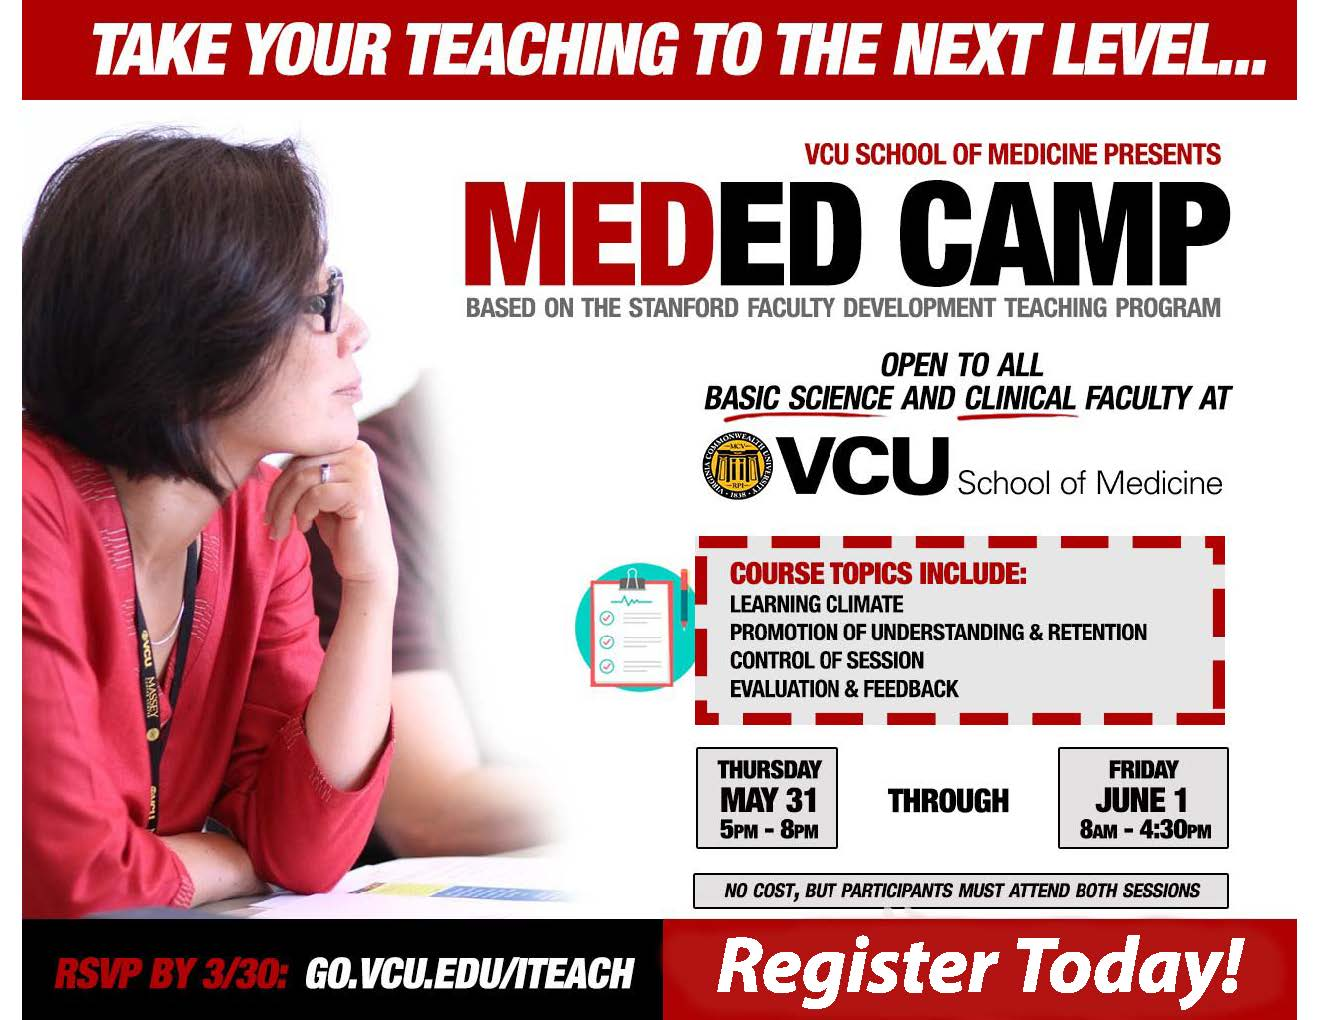 MedEd Camp-May 31 through June 1